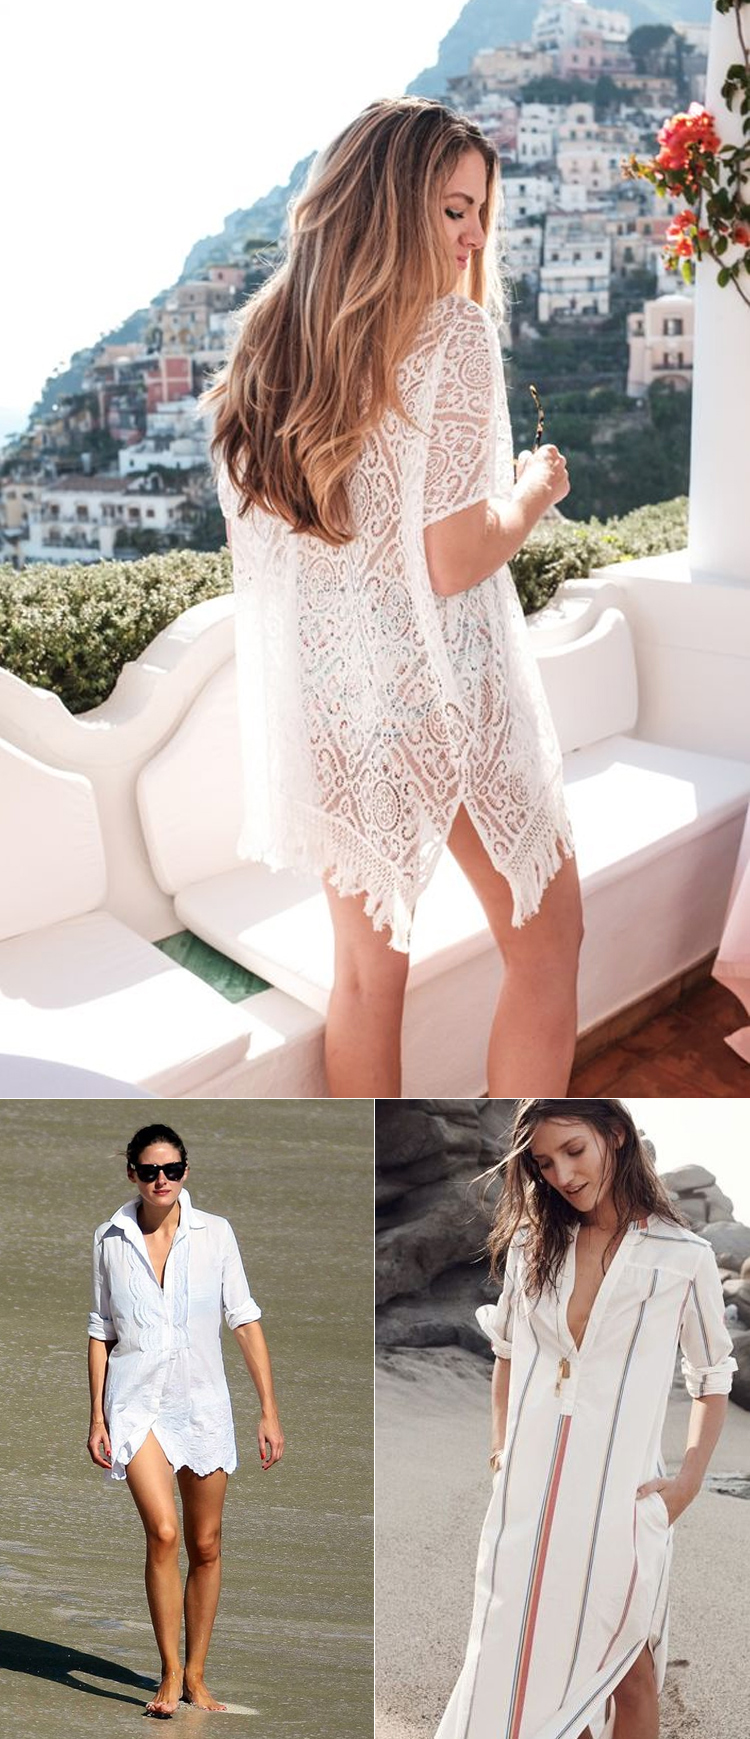 ba4d01f271b56 We've been on the hunt for the perfect little dresses and wraps to throw on  over that bikini, and have rounded up some of our favorites!